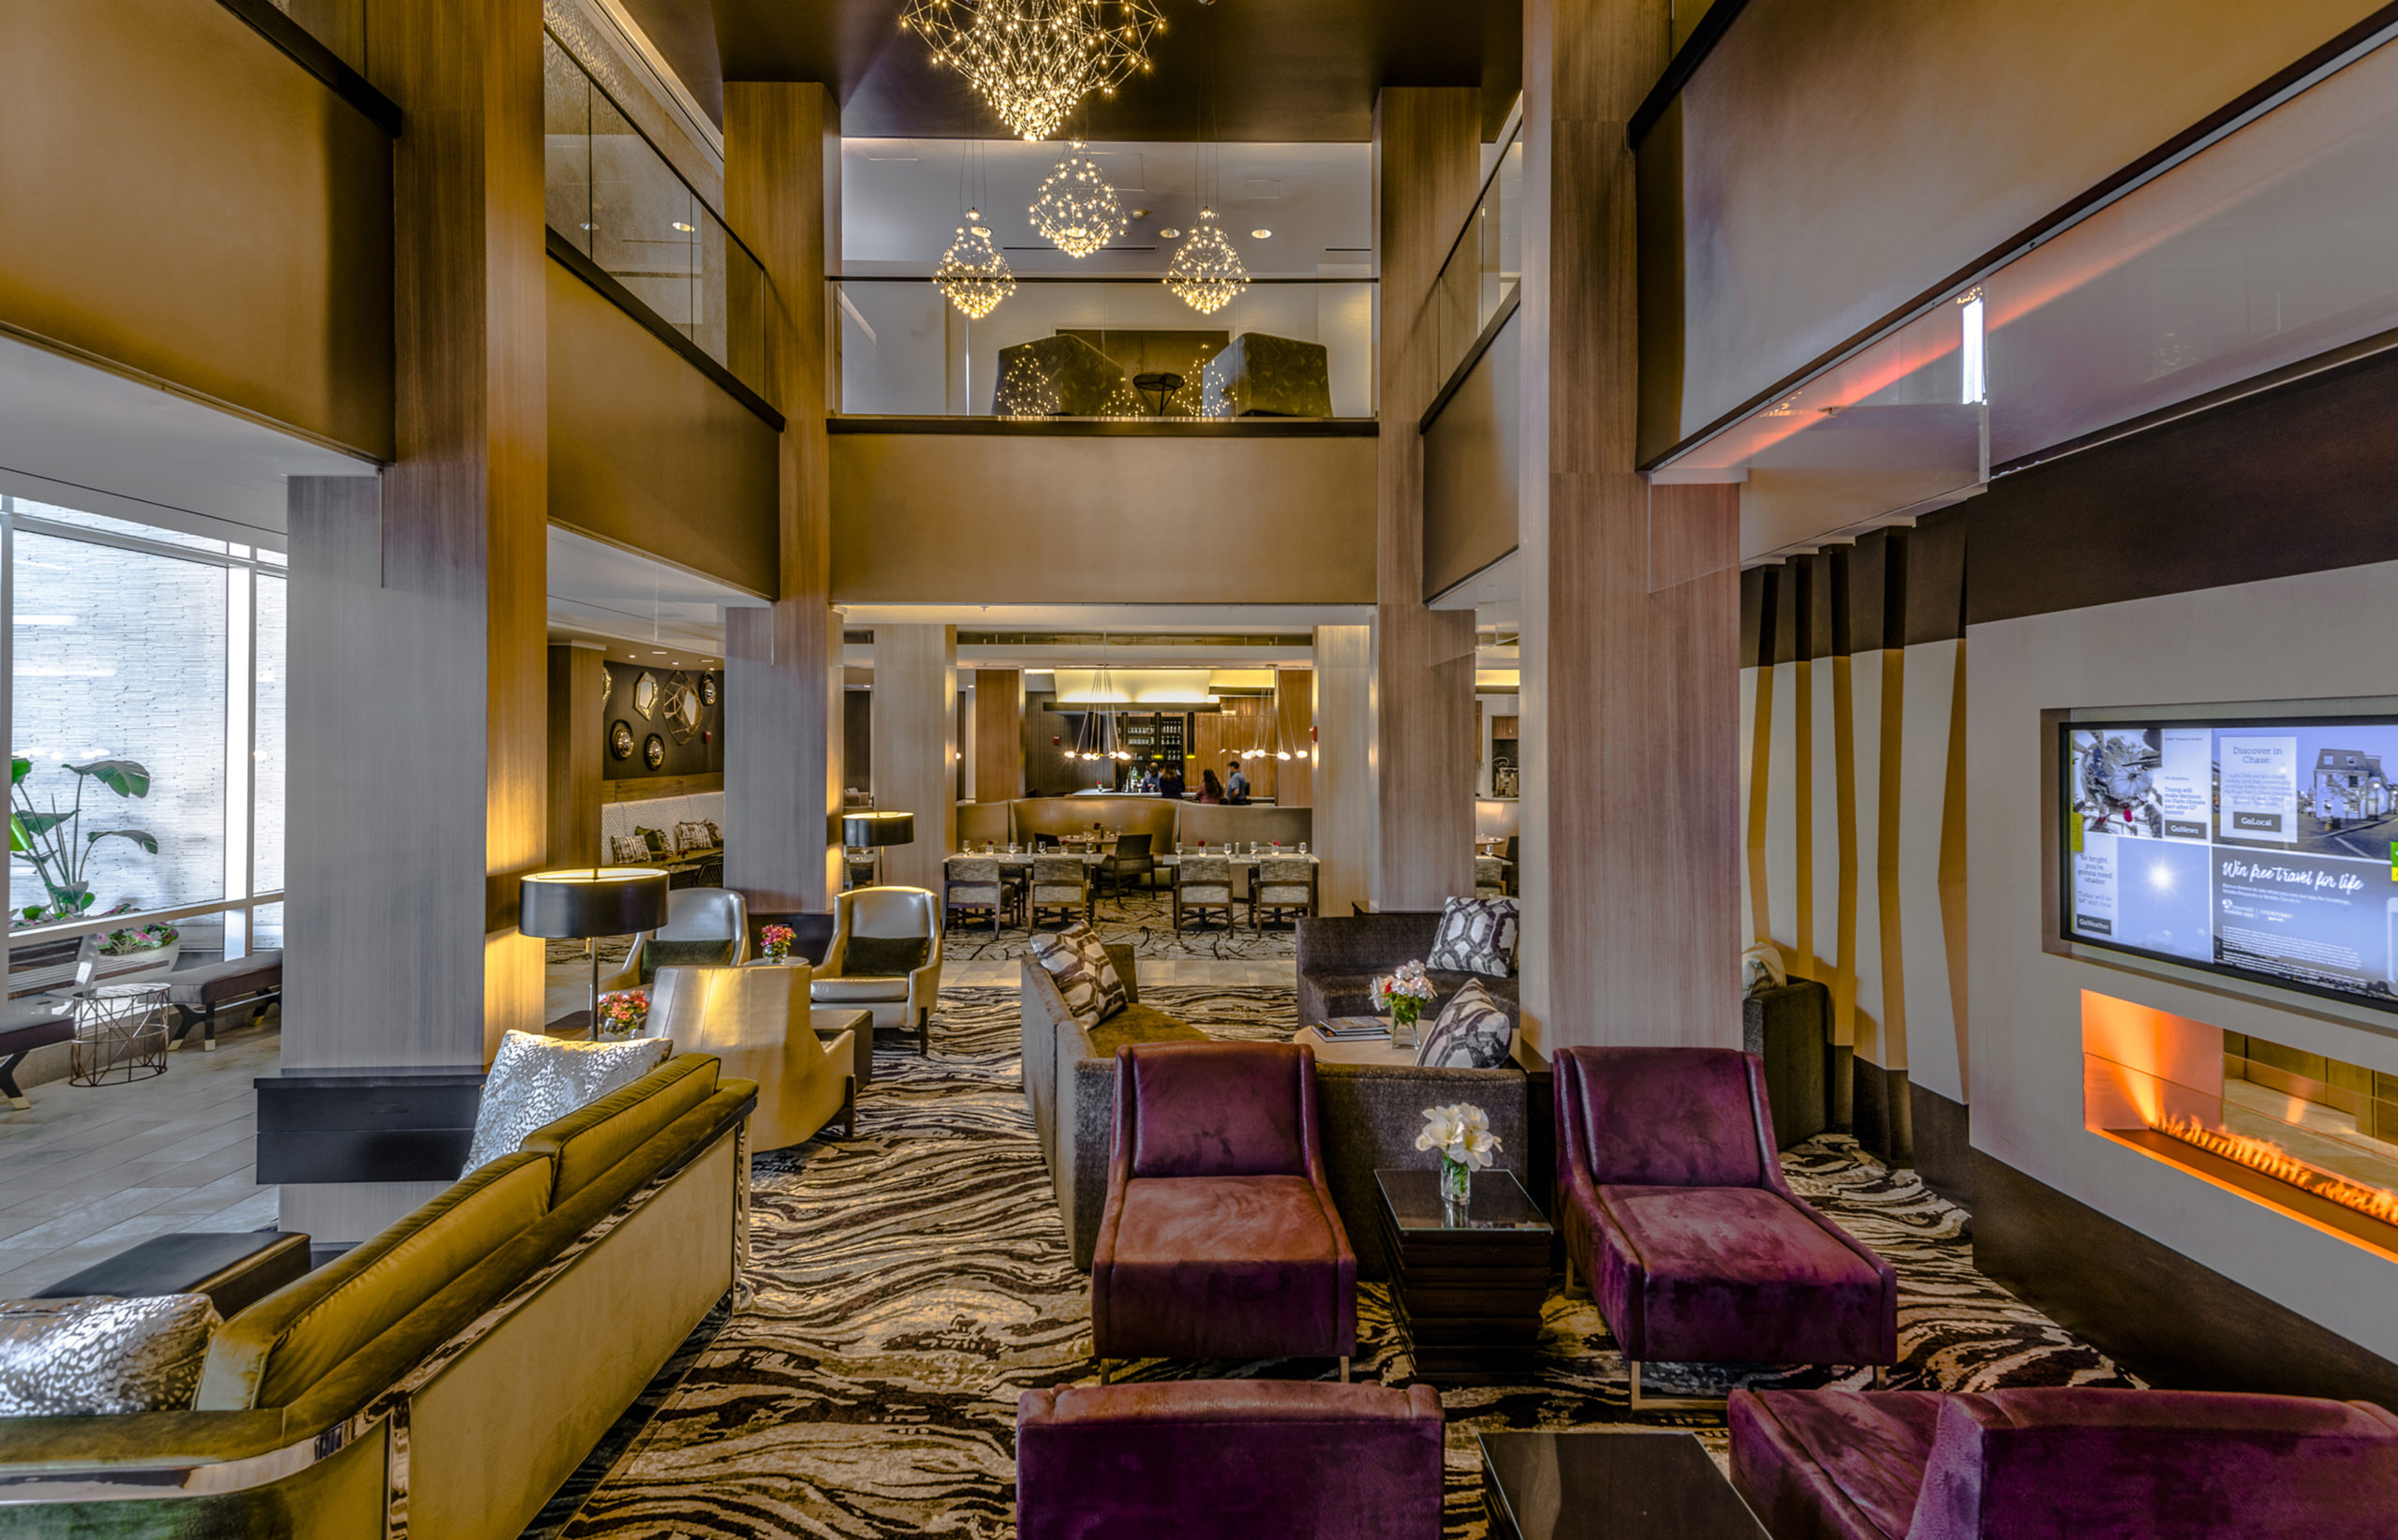 Donohoe Hospitality Services Announces the Management of the Courtyard by Marriott Bethesda Chevy Chase, MD Thumbnail